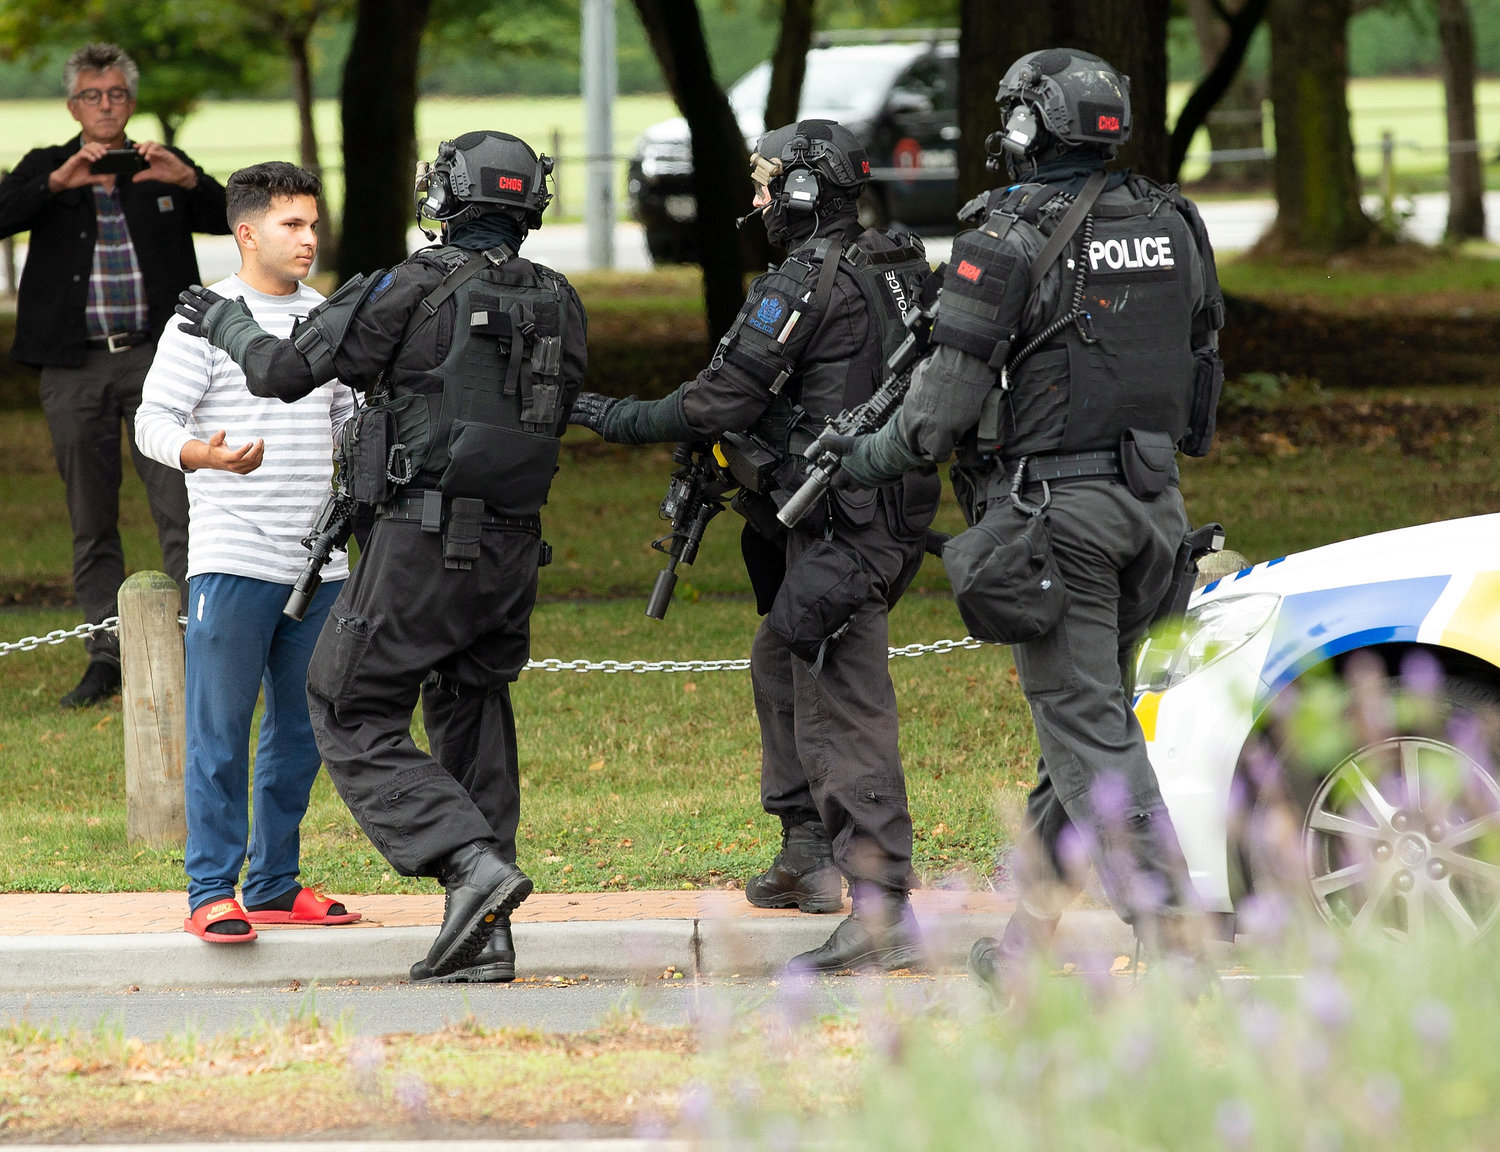 Members of a SWAT team push back members of the public following a shooting at the Al Noor Mosque in Christchurch, New Zealand, March 15.